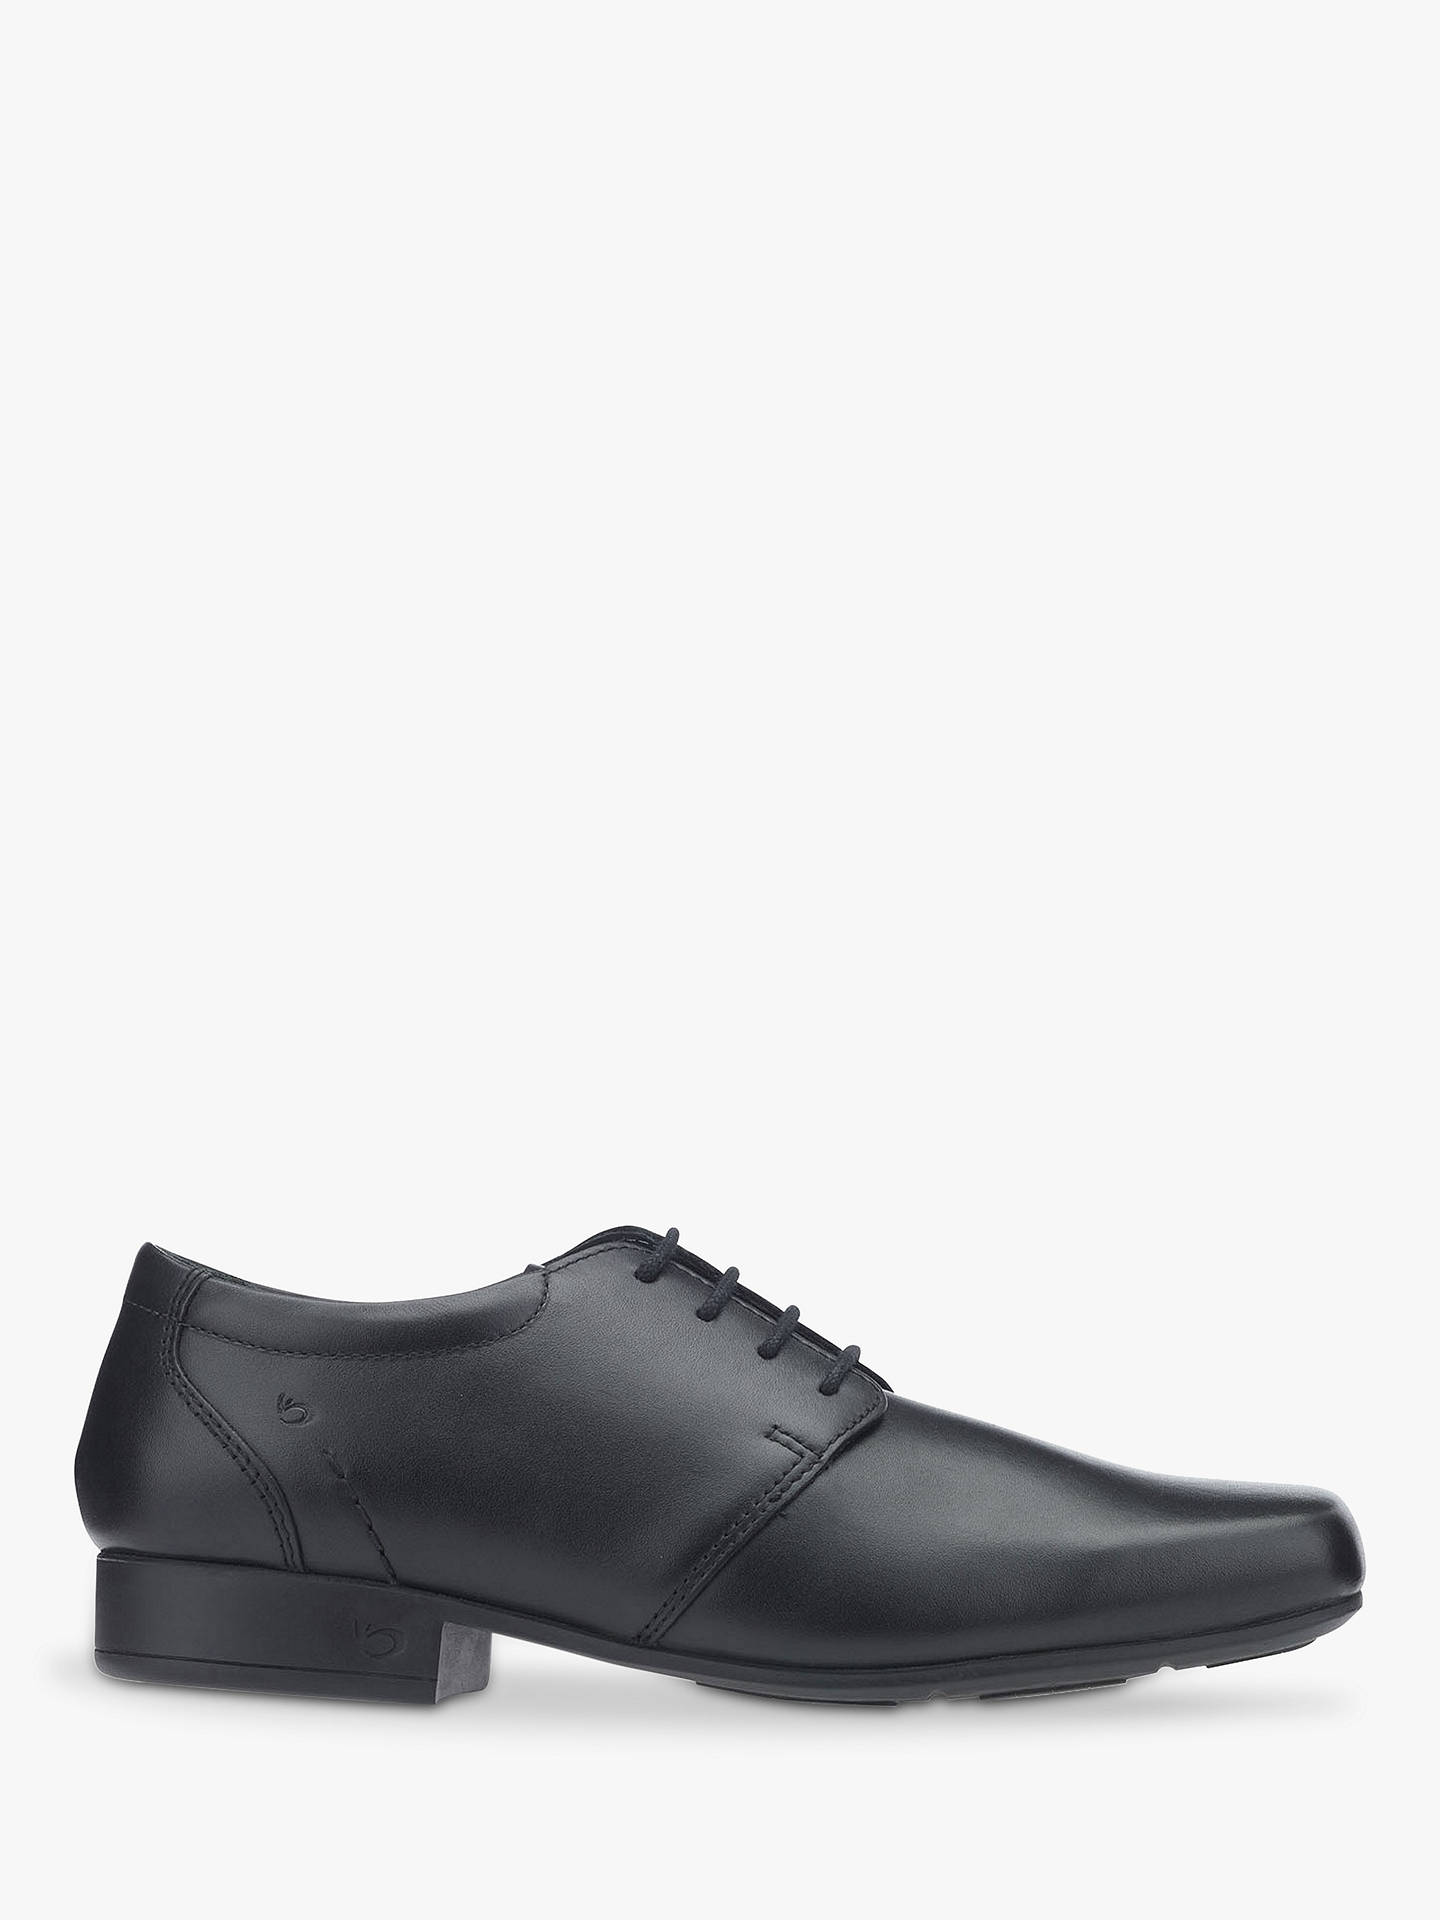 Buy Start-rite Rhino Theo Leather Shoes, Black, 3F Online at johnlewis.com